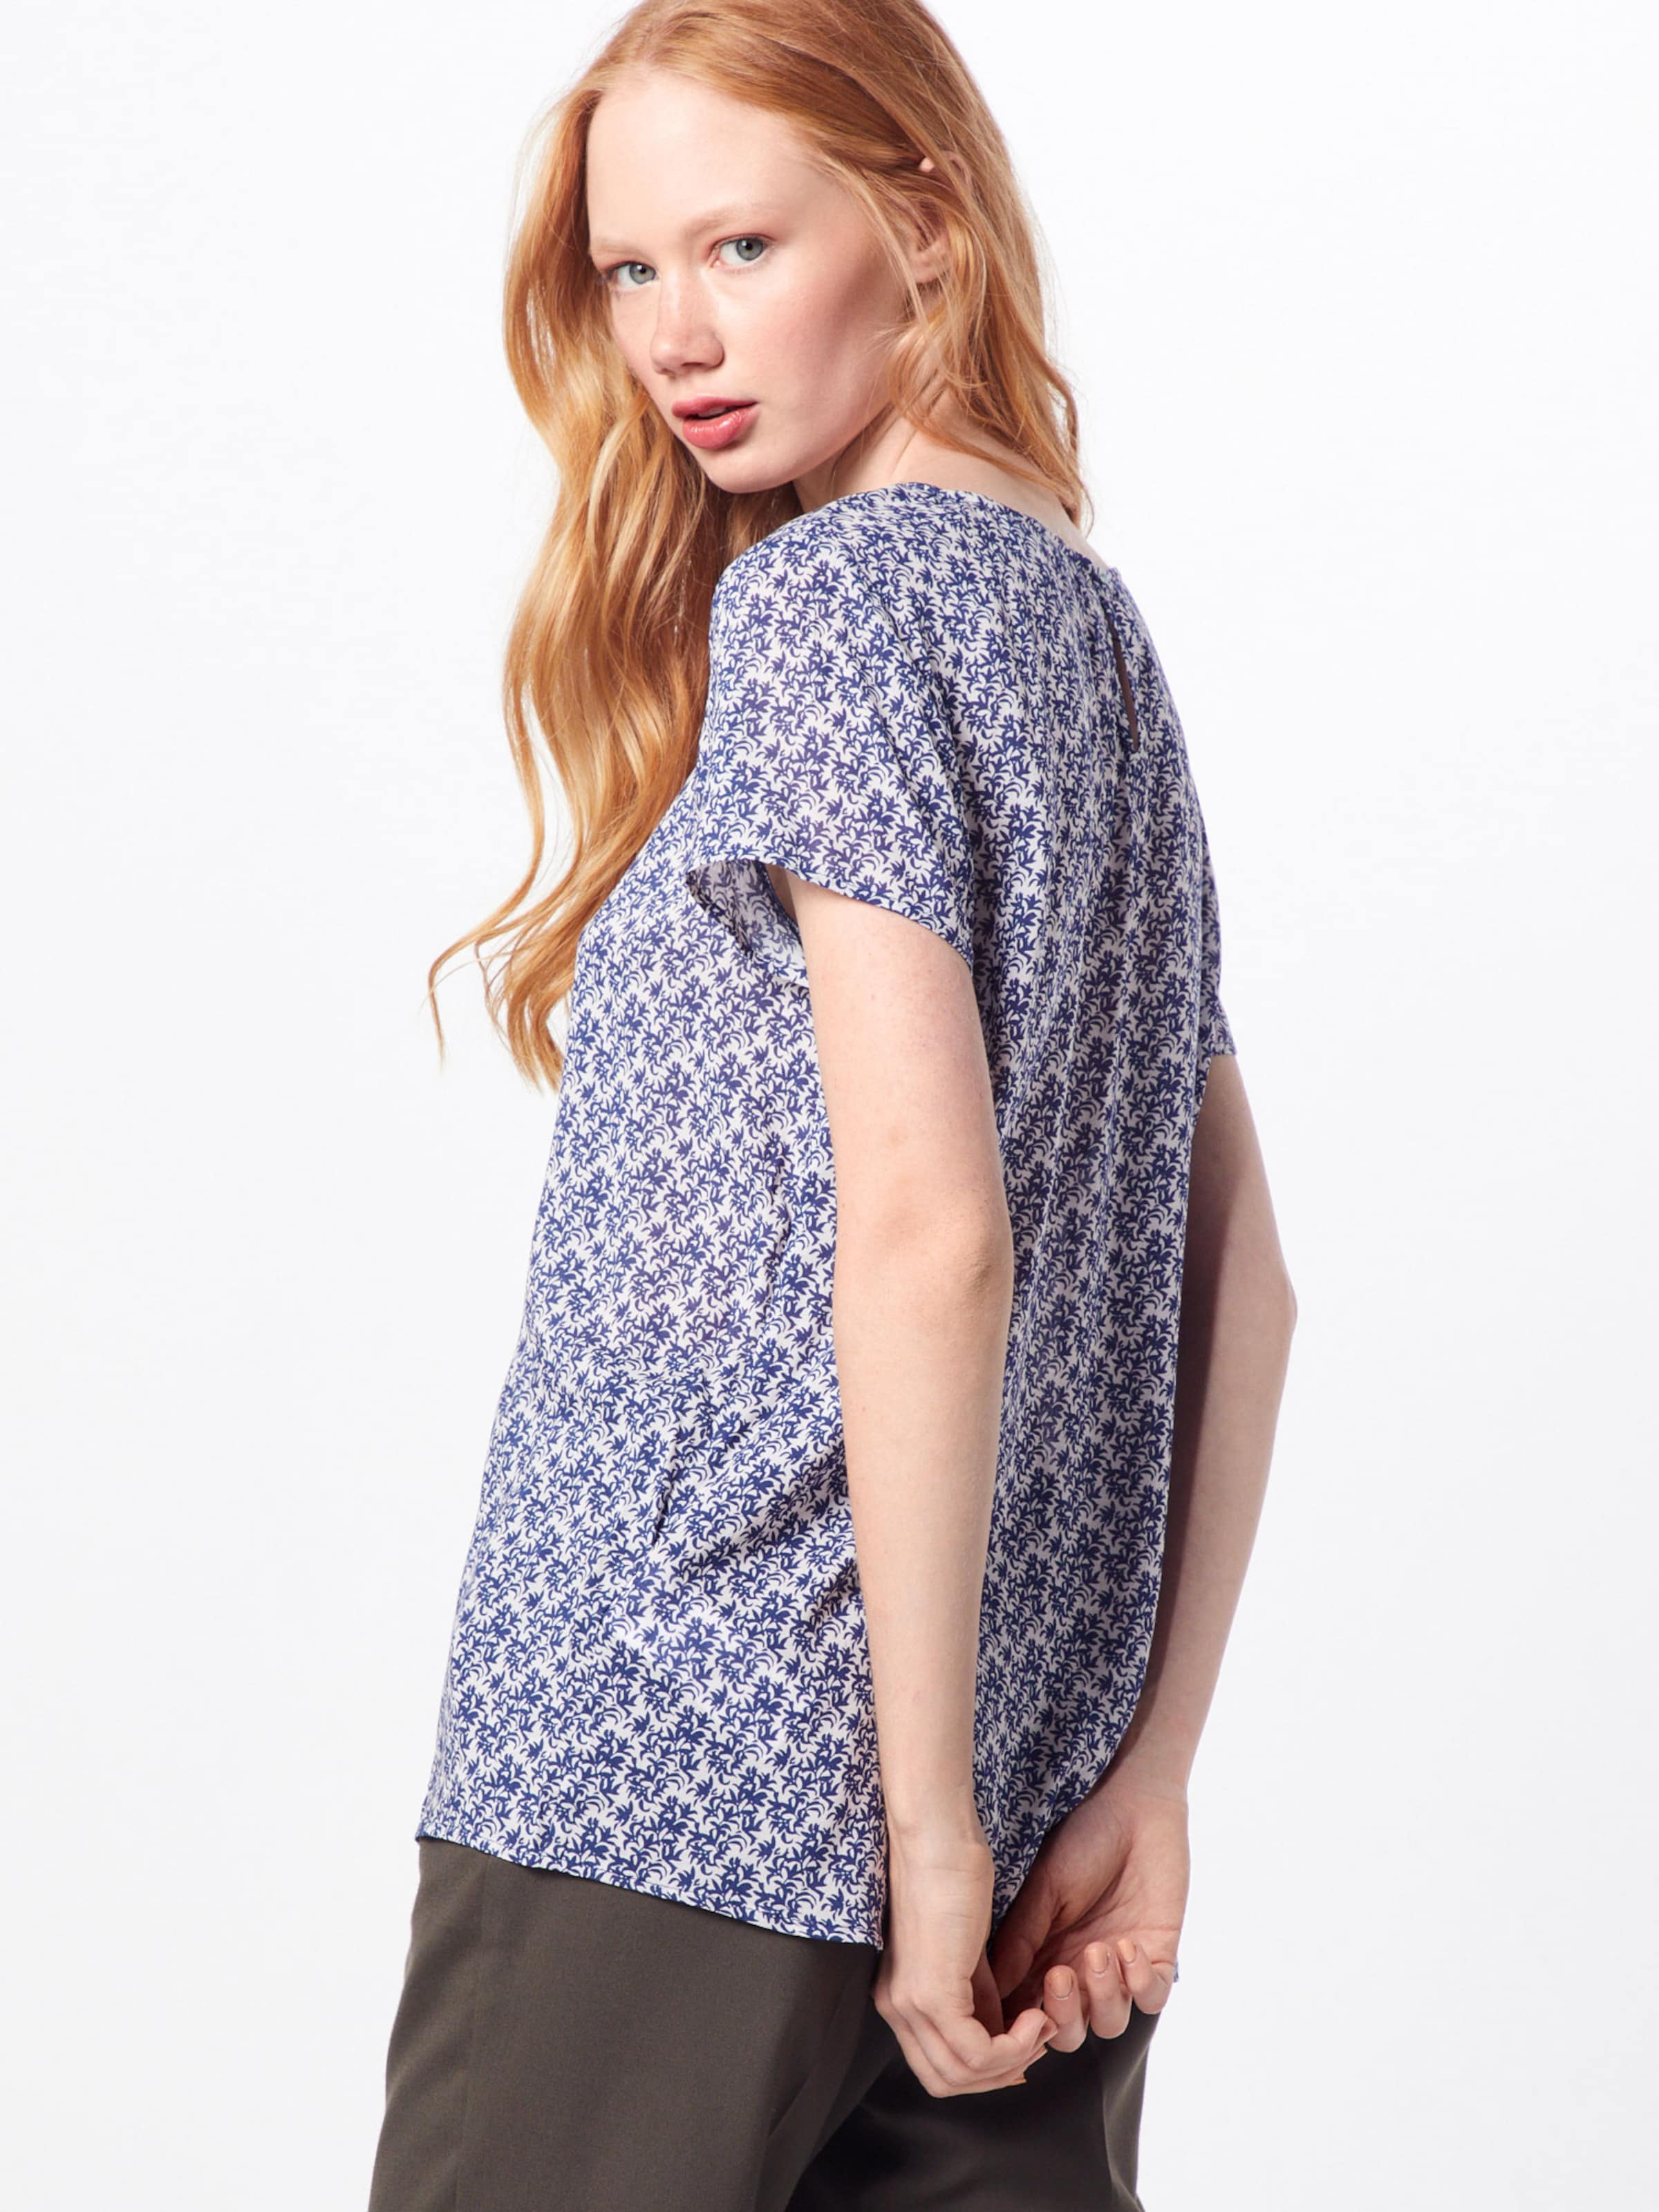 Bluse Esprit Navy By Edc 'lightviscosevoi' In xCBdoe